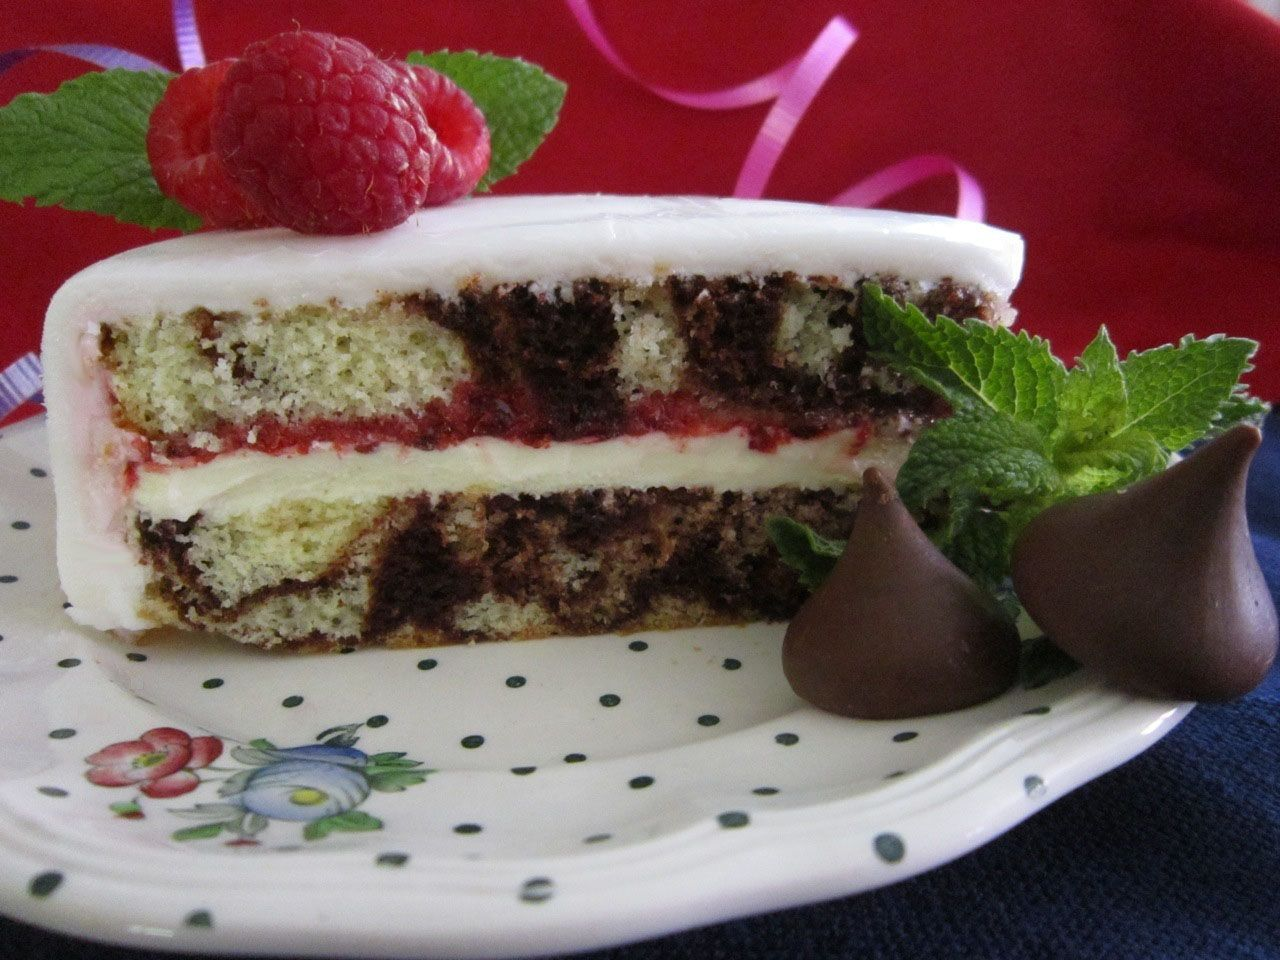 Marble Cake With Raspberry Amp Cream Filling How To Make